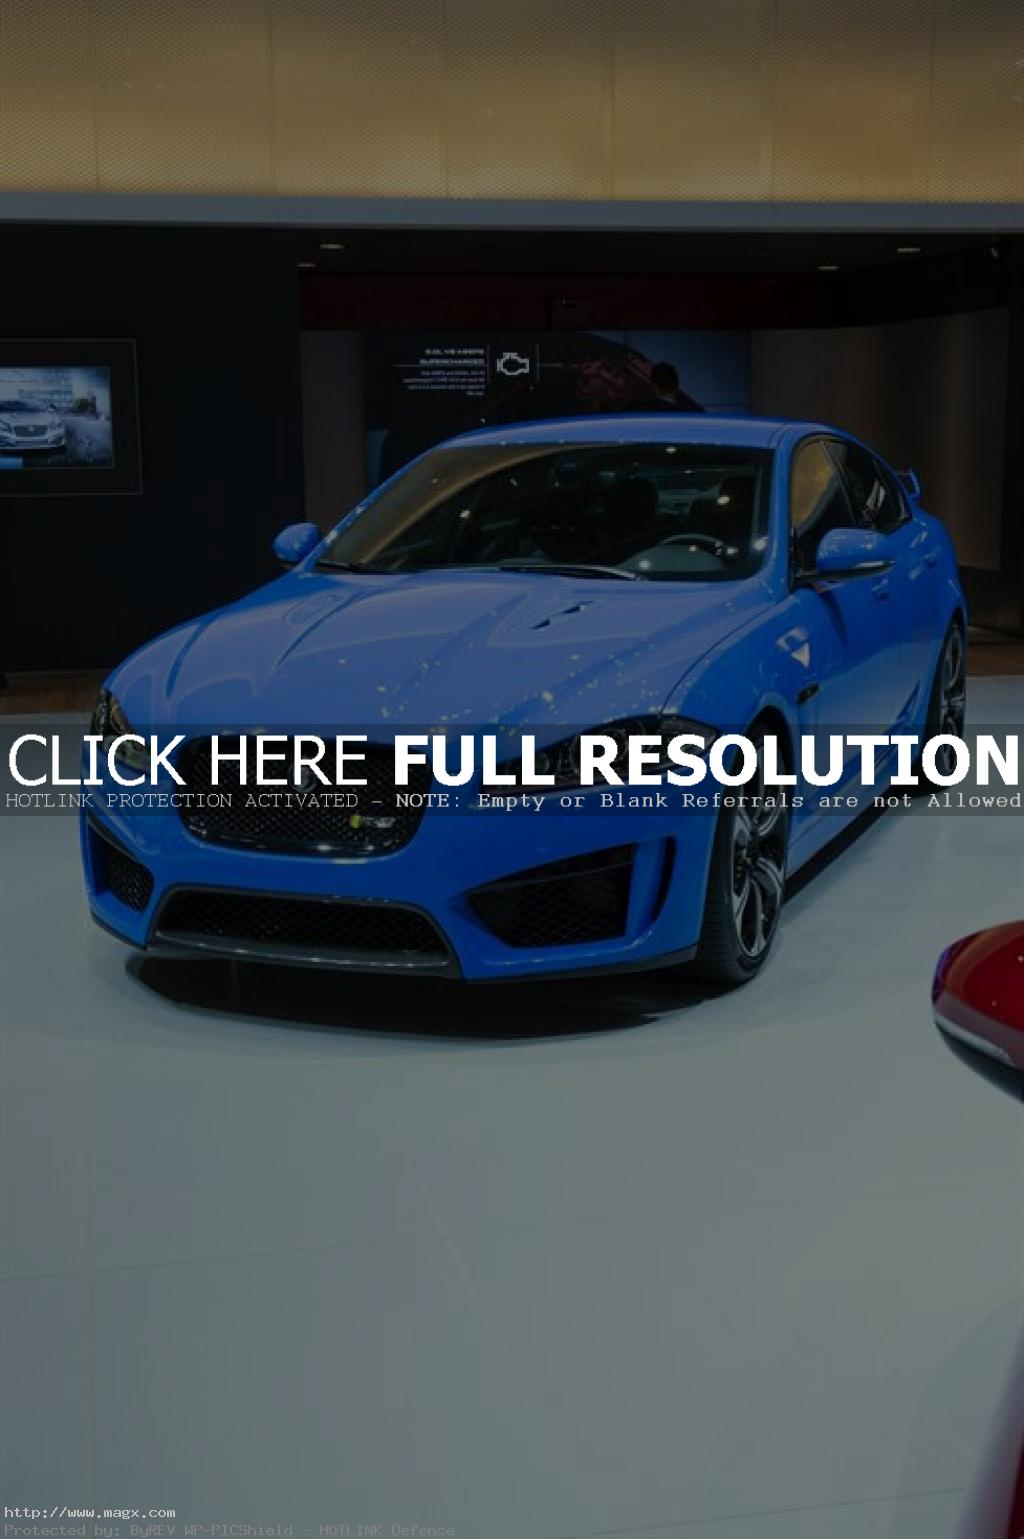 geneva motor show11 Jaguar at the 83rd International Geneva Motorshow